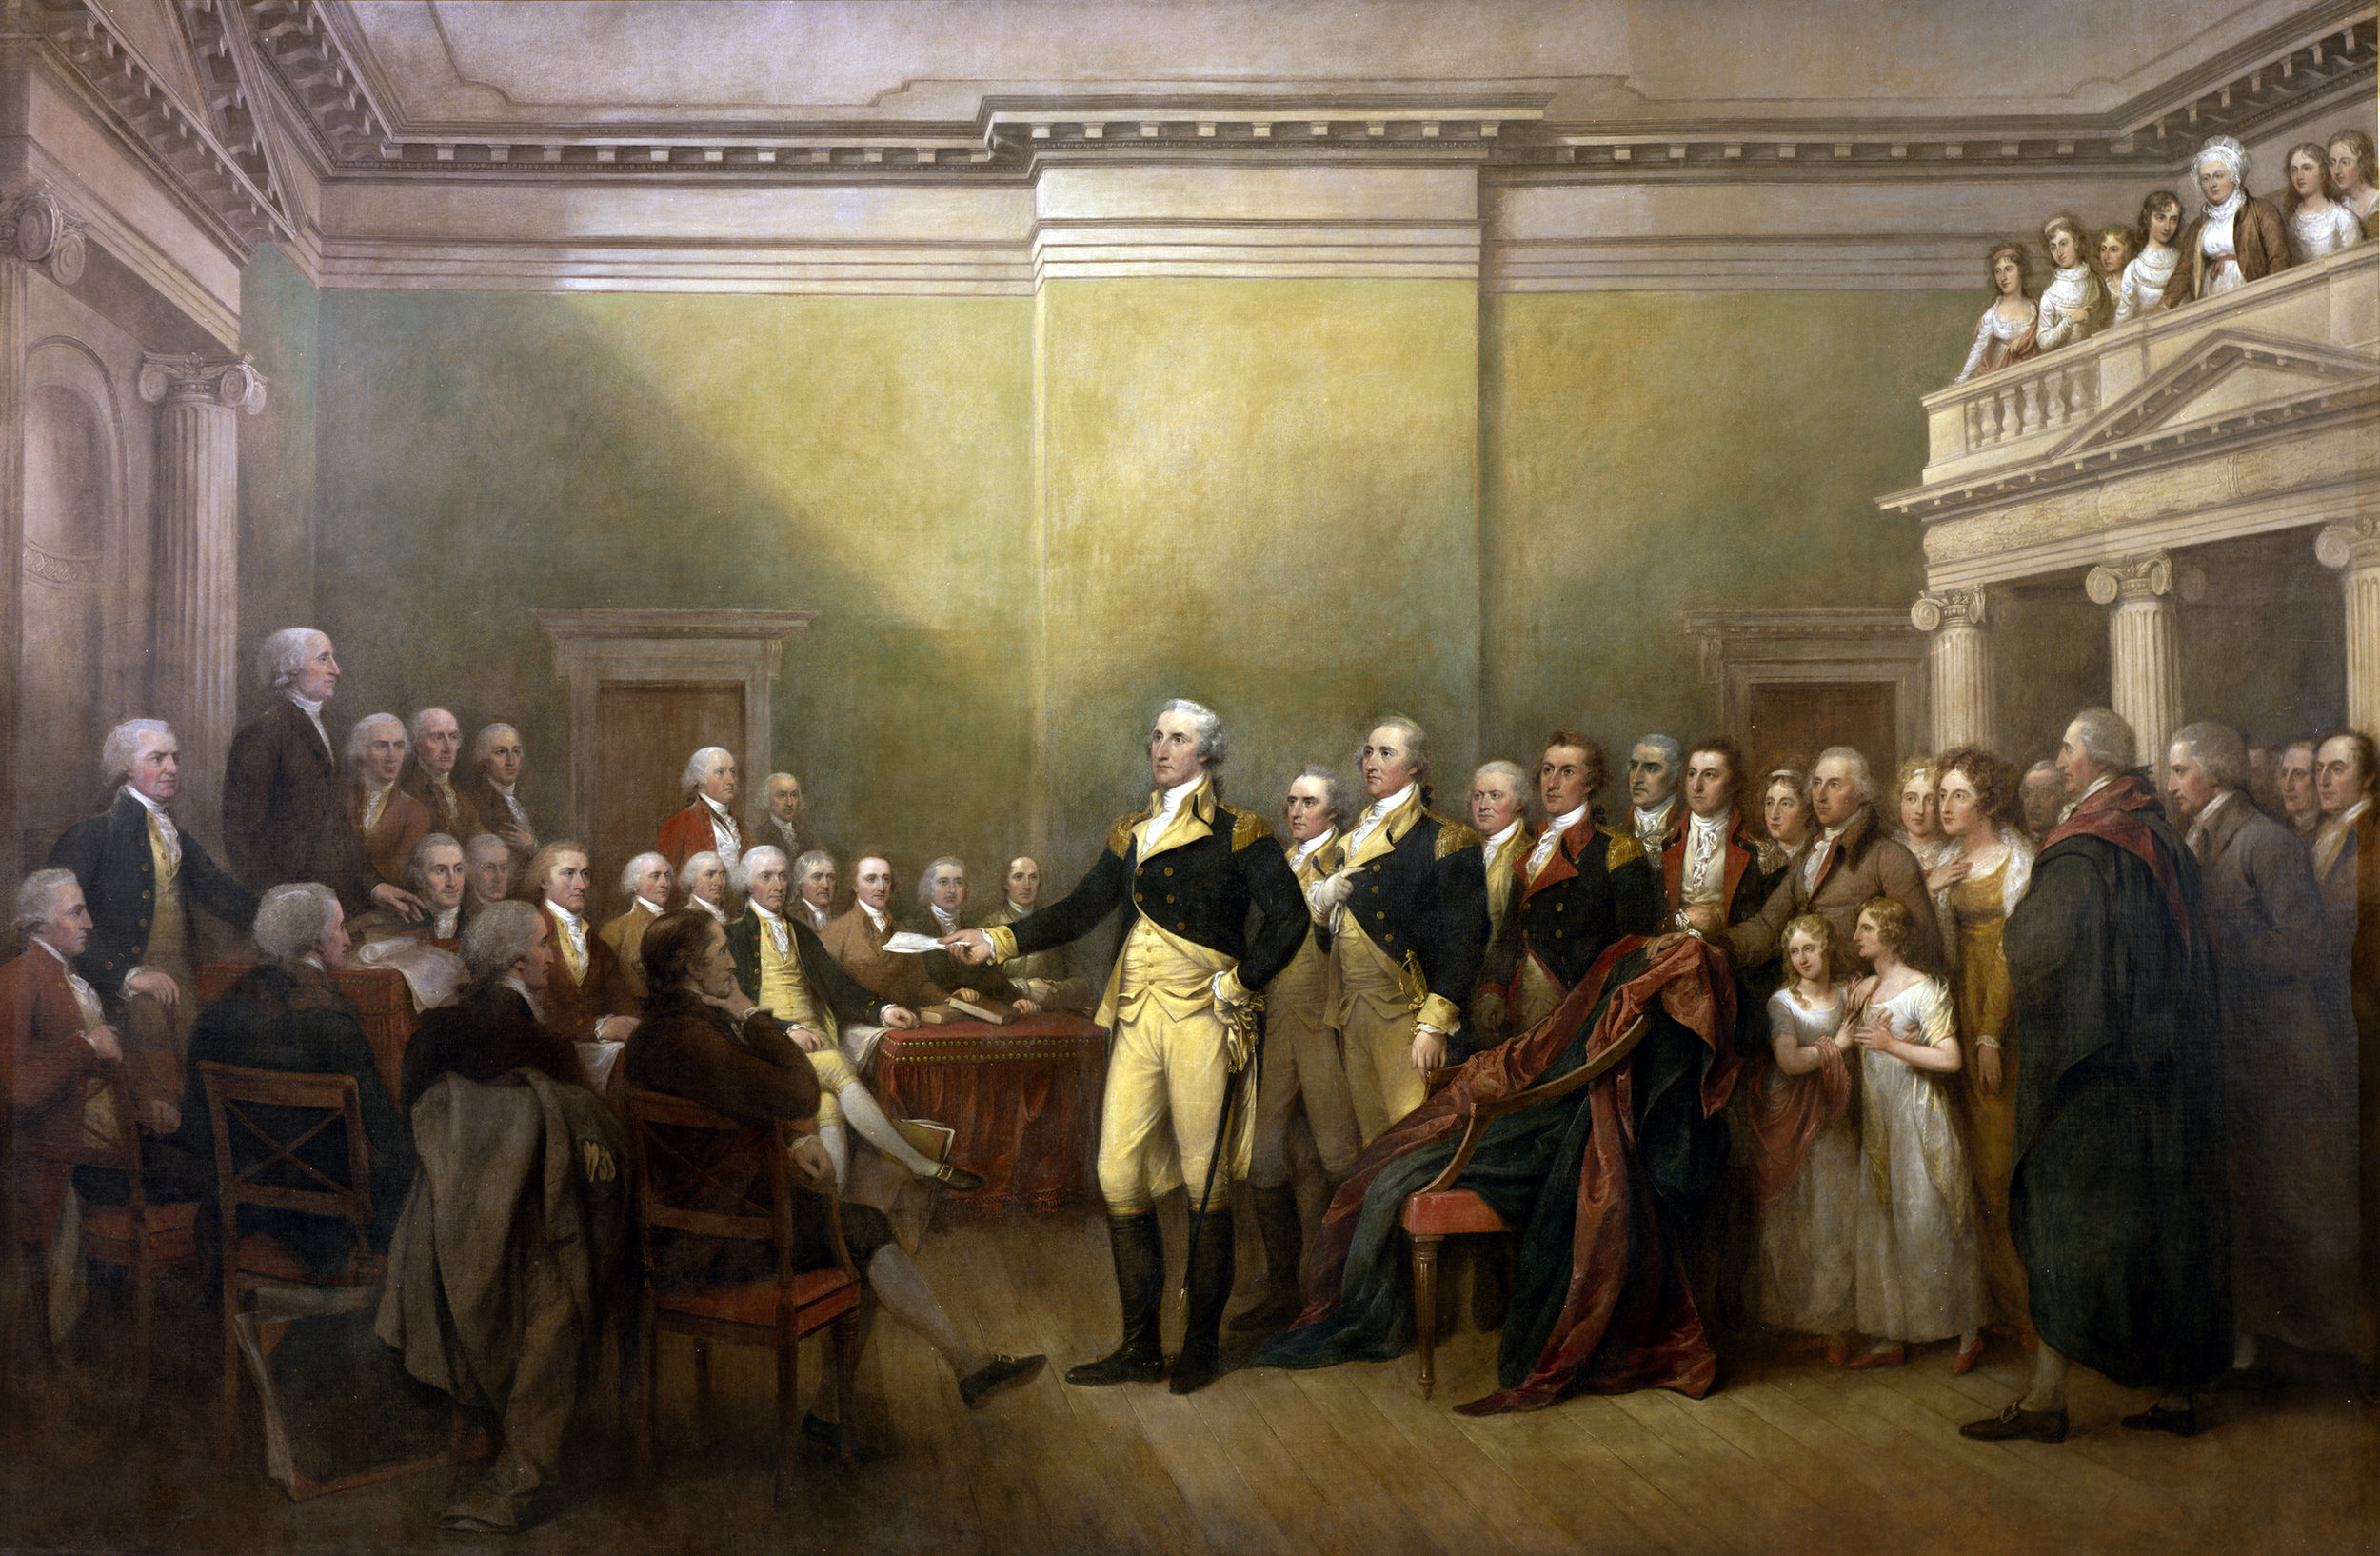 General George Washington Resigning His Commission  by John Trumbull, commissioned in 1817. From  Wikimedia Commons .